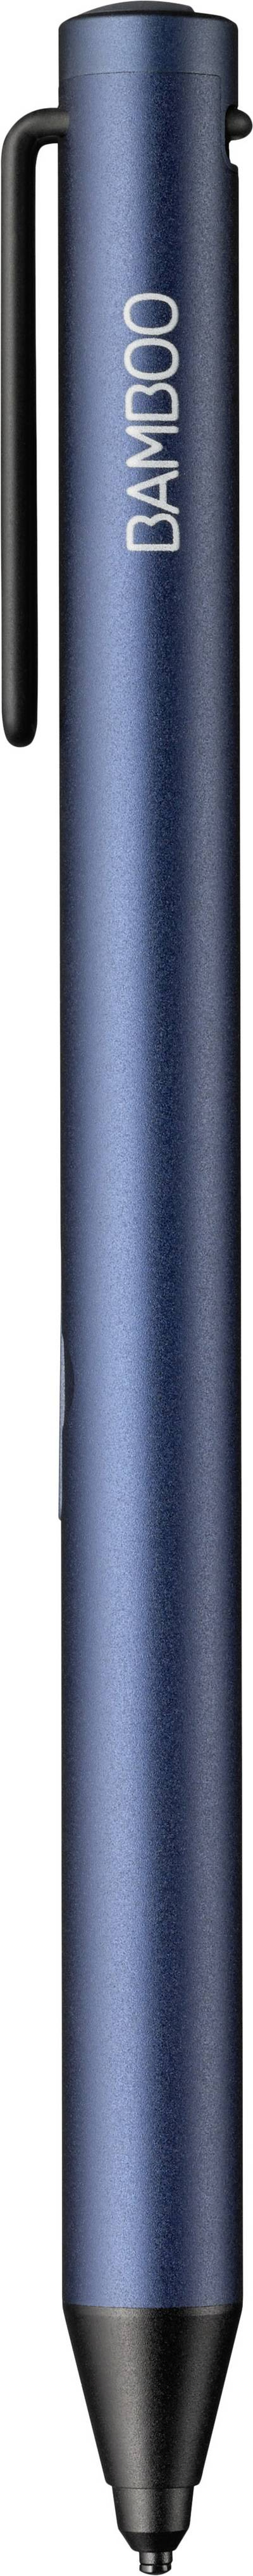 Image of Wacom Bamboo Tip Touchpen Replaceable carbon fibre tip, + precision tip, + pressure-sensitive tip, Rechargeable Blue